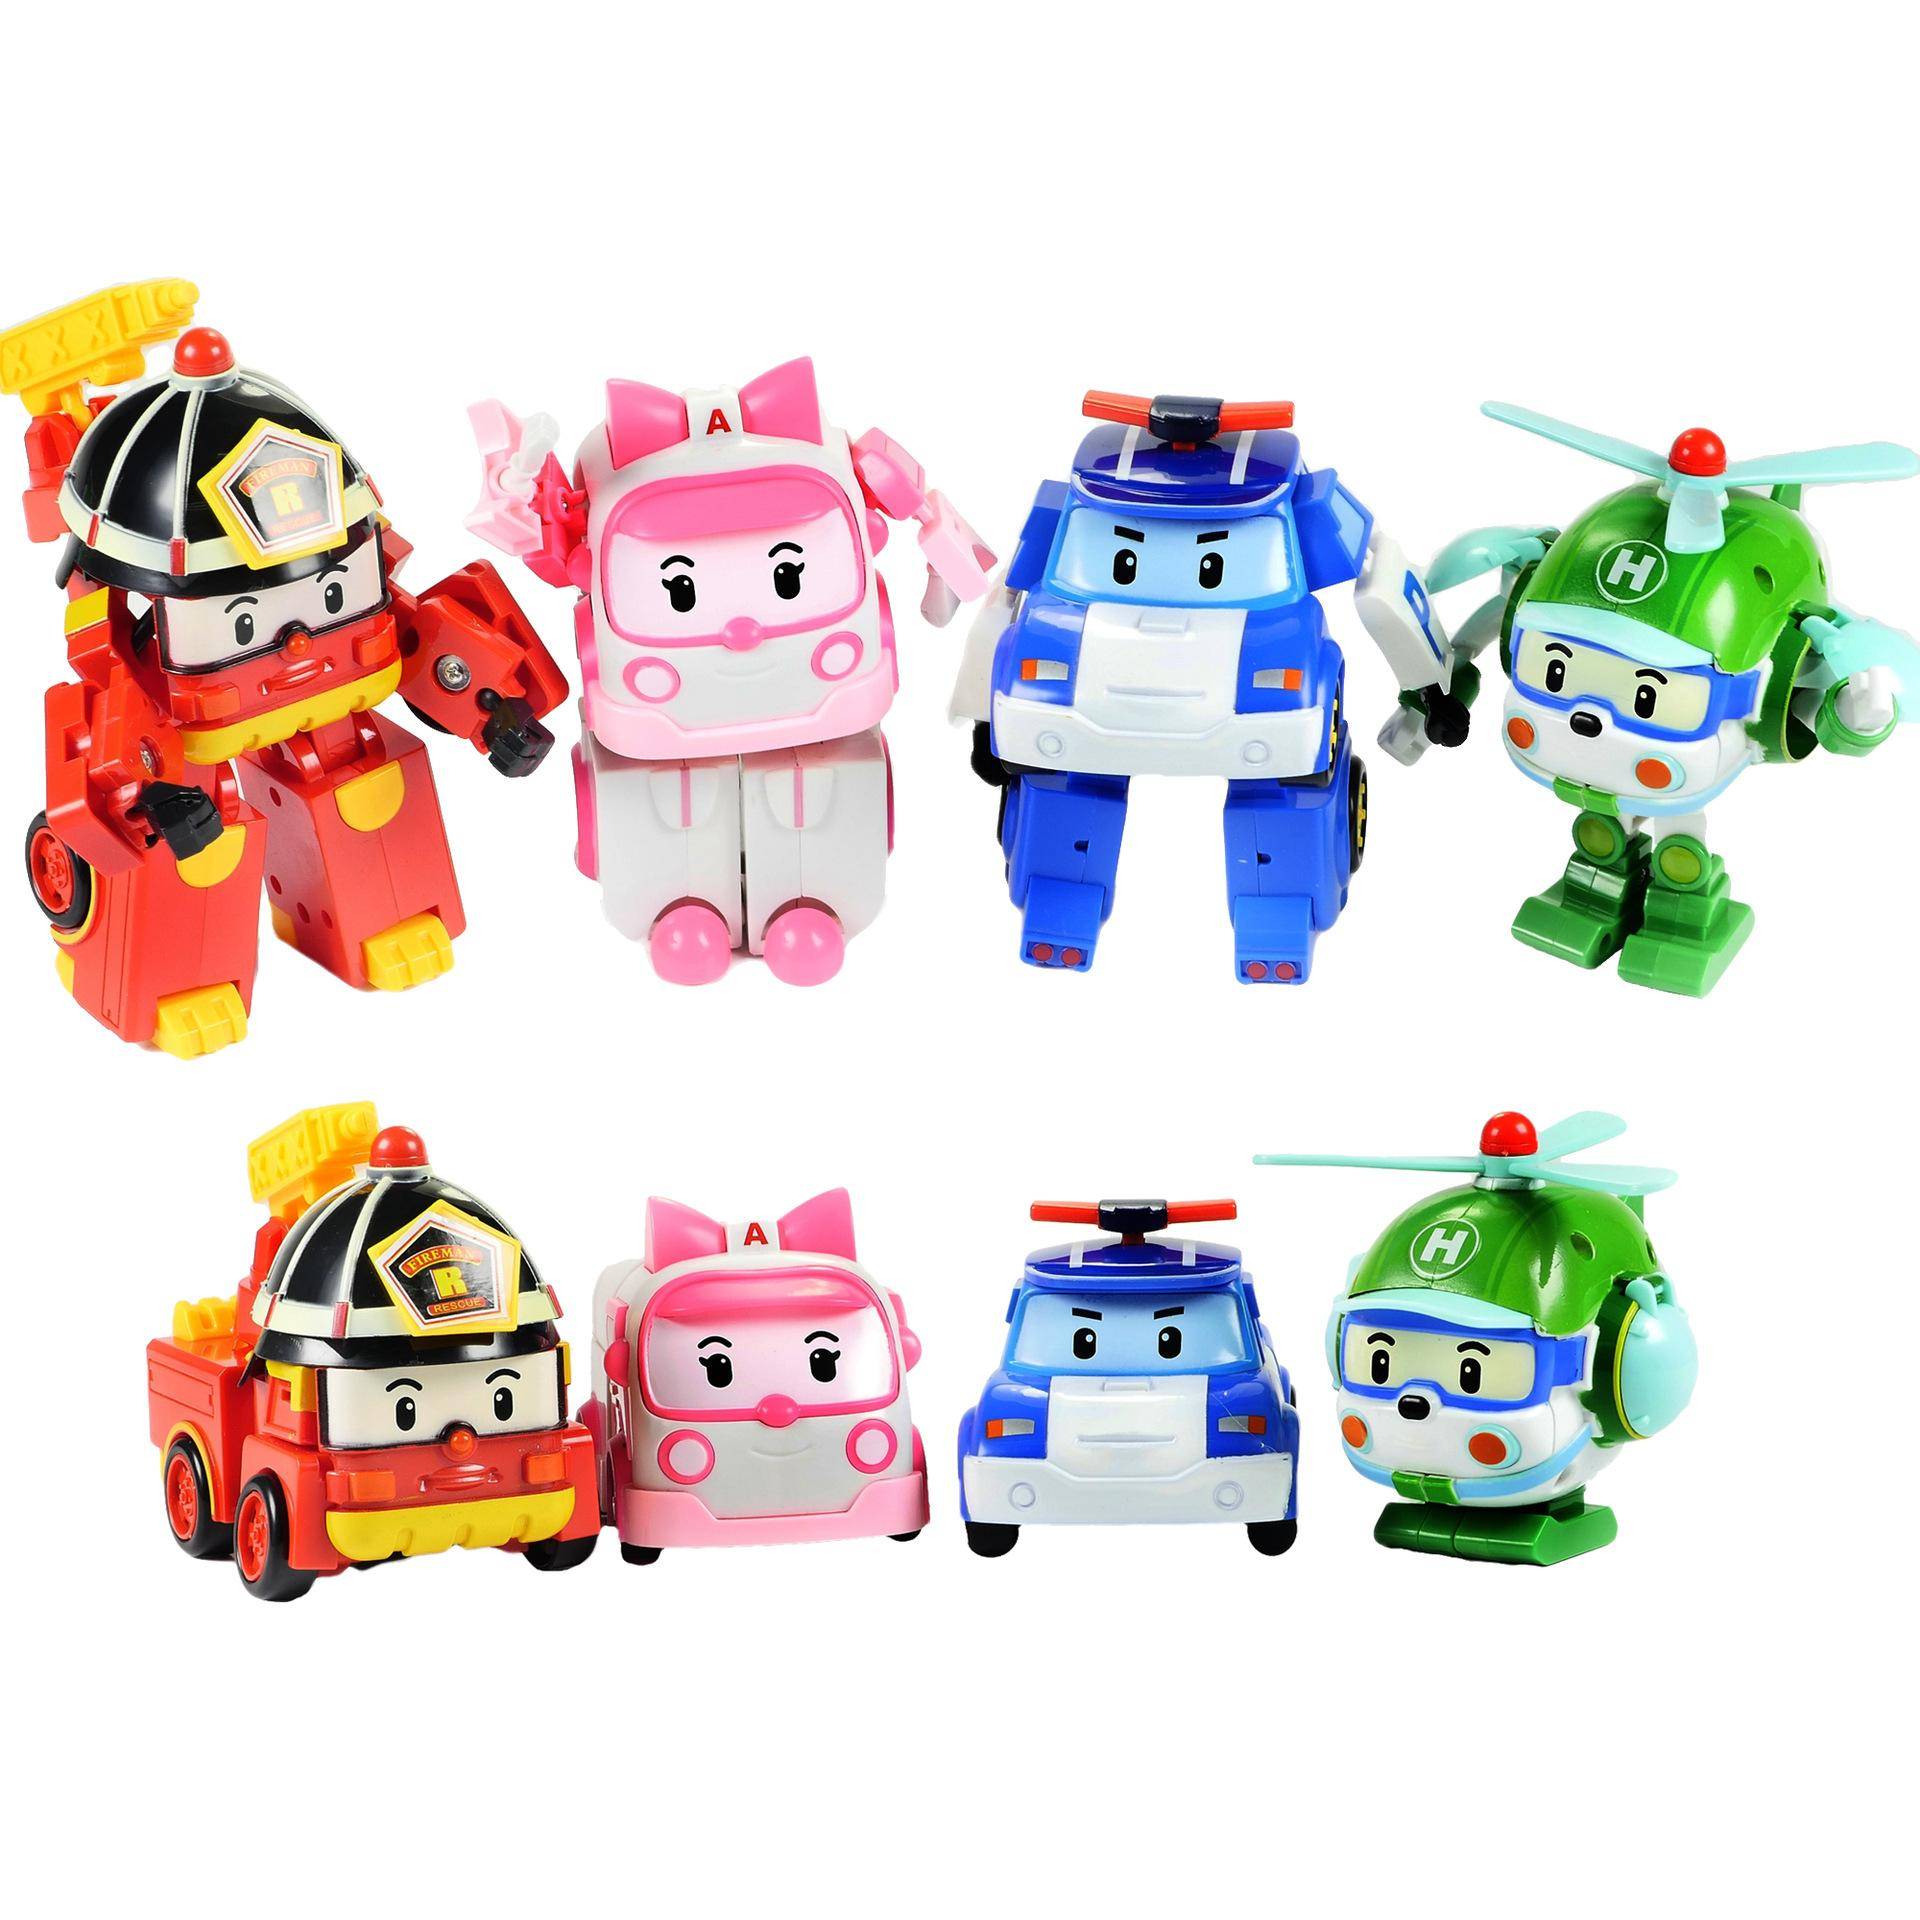 2017 robocar poli deformation car toys 4 styles police car fire truck ambulance helicopter mixed for kids toys from rino 553 dhgatecom